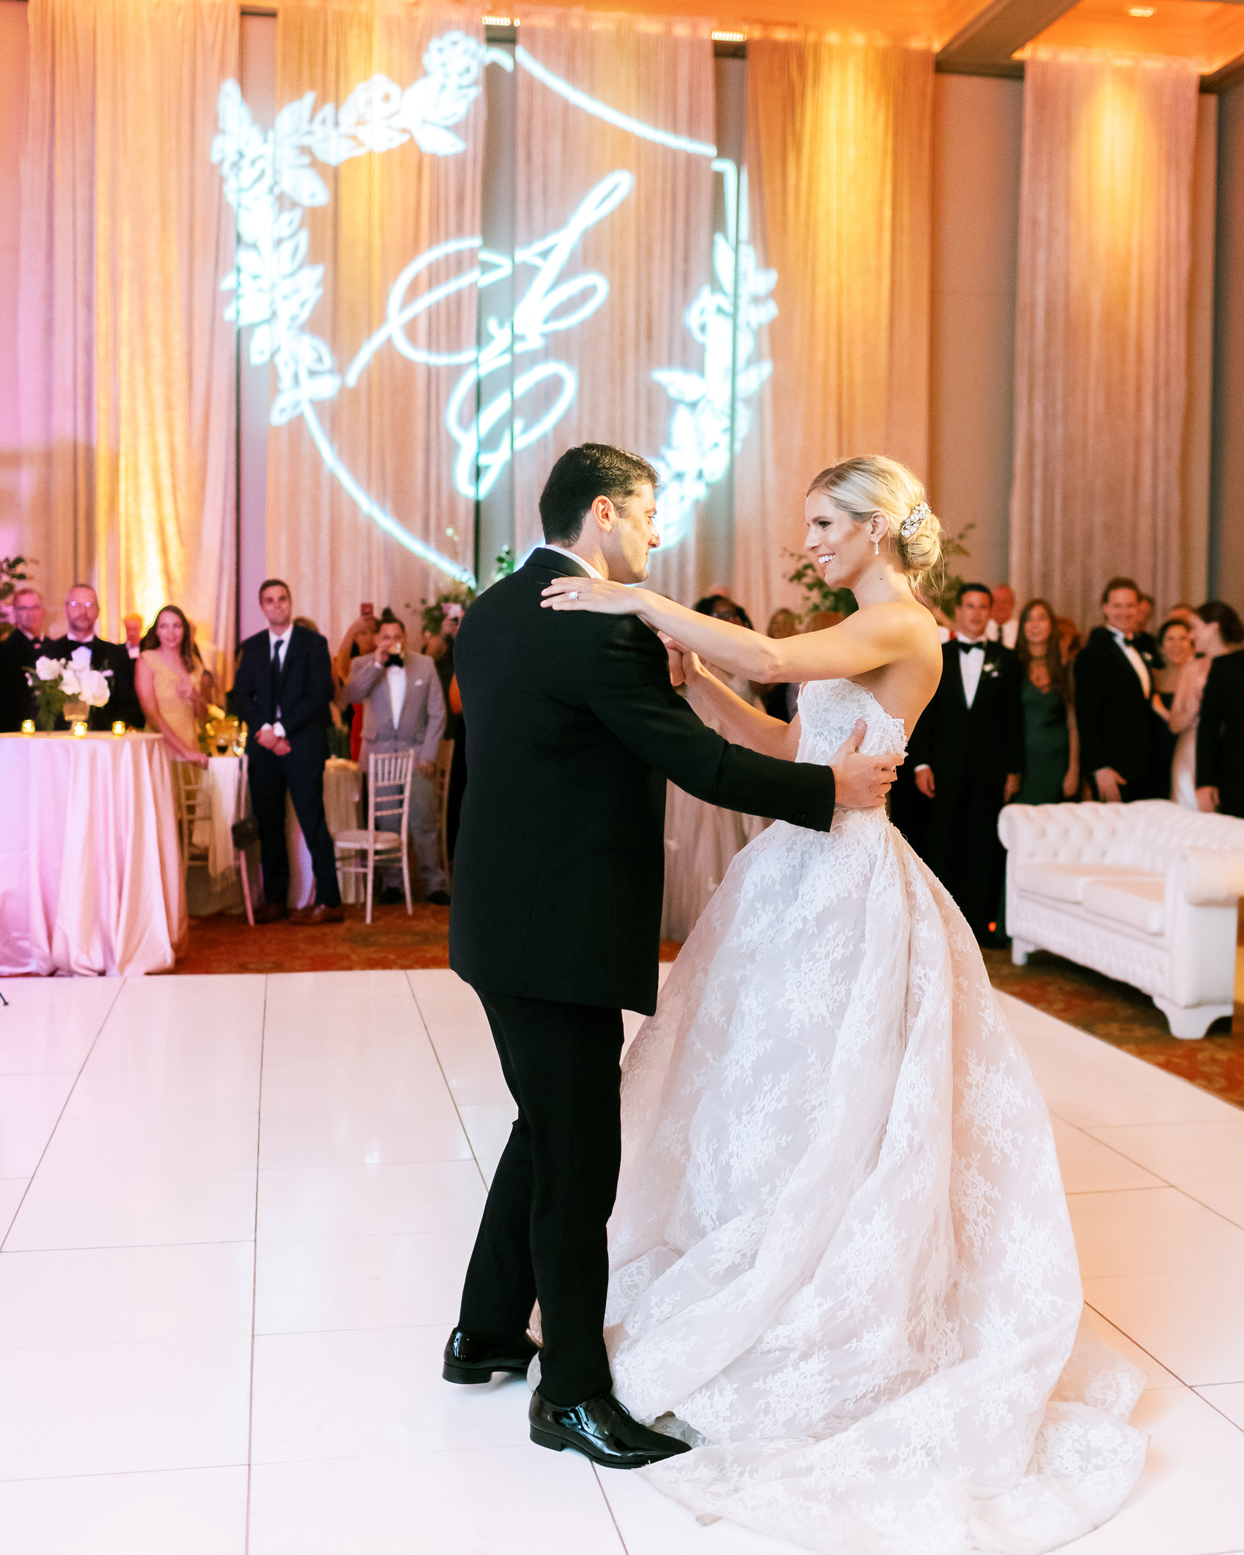 bride and groom share first dance on white tile dance floor surrounded by guests